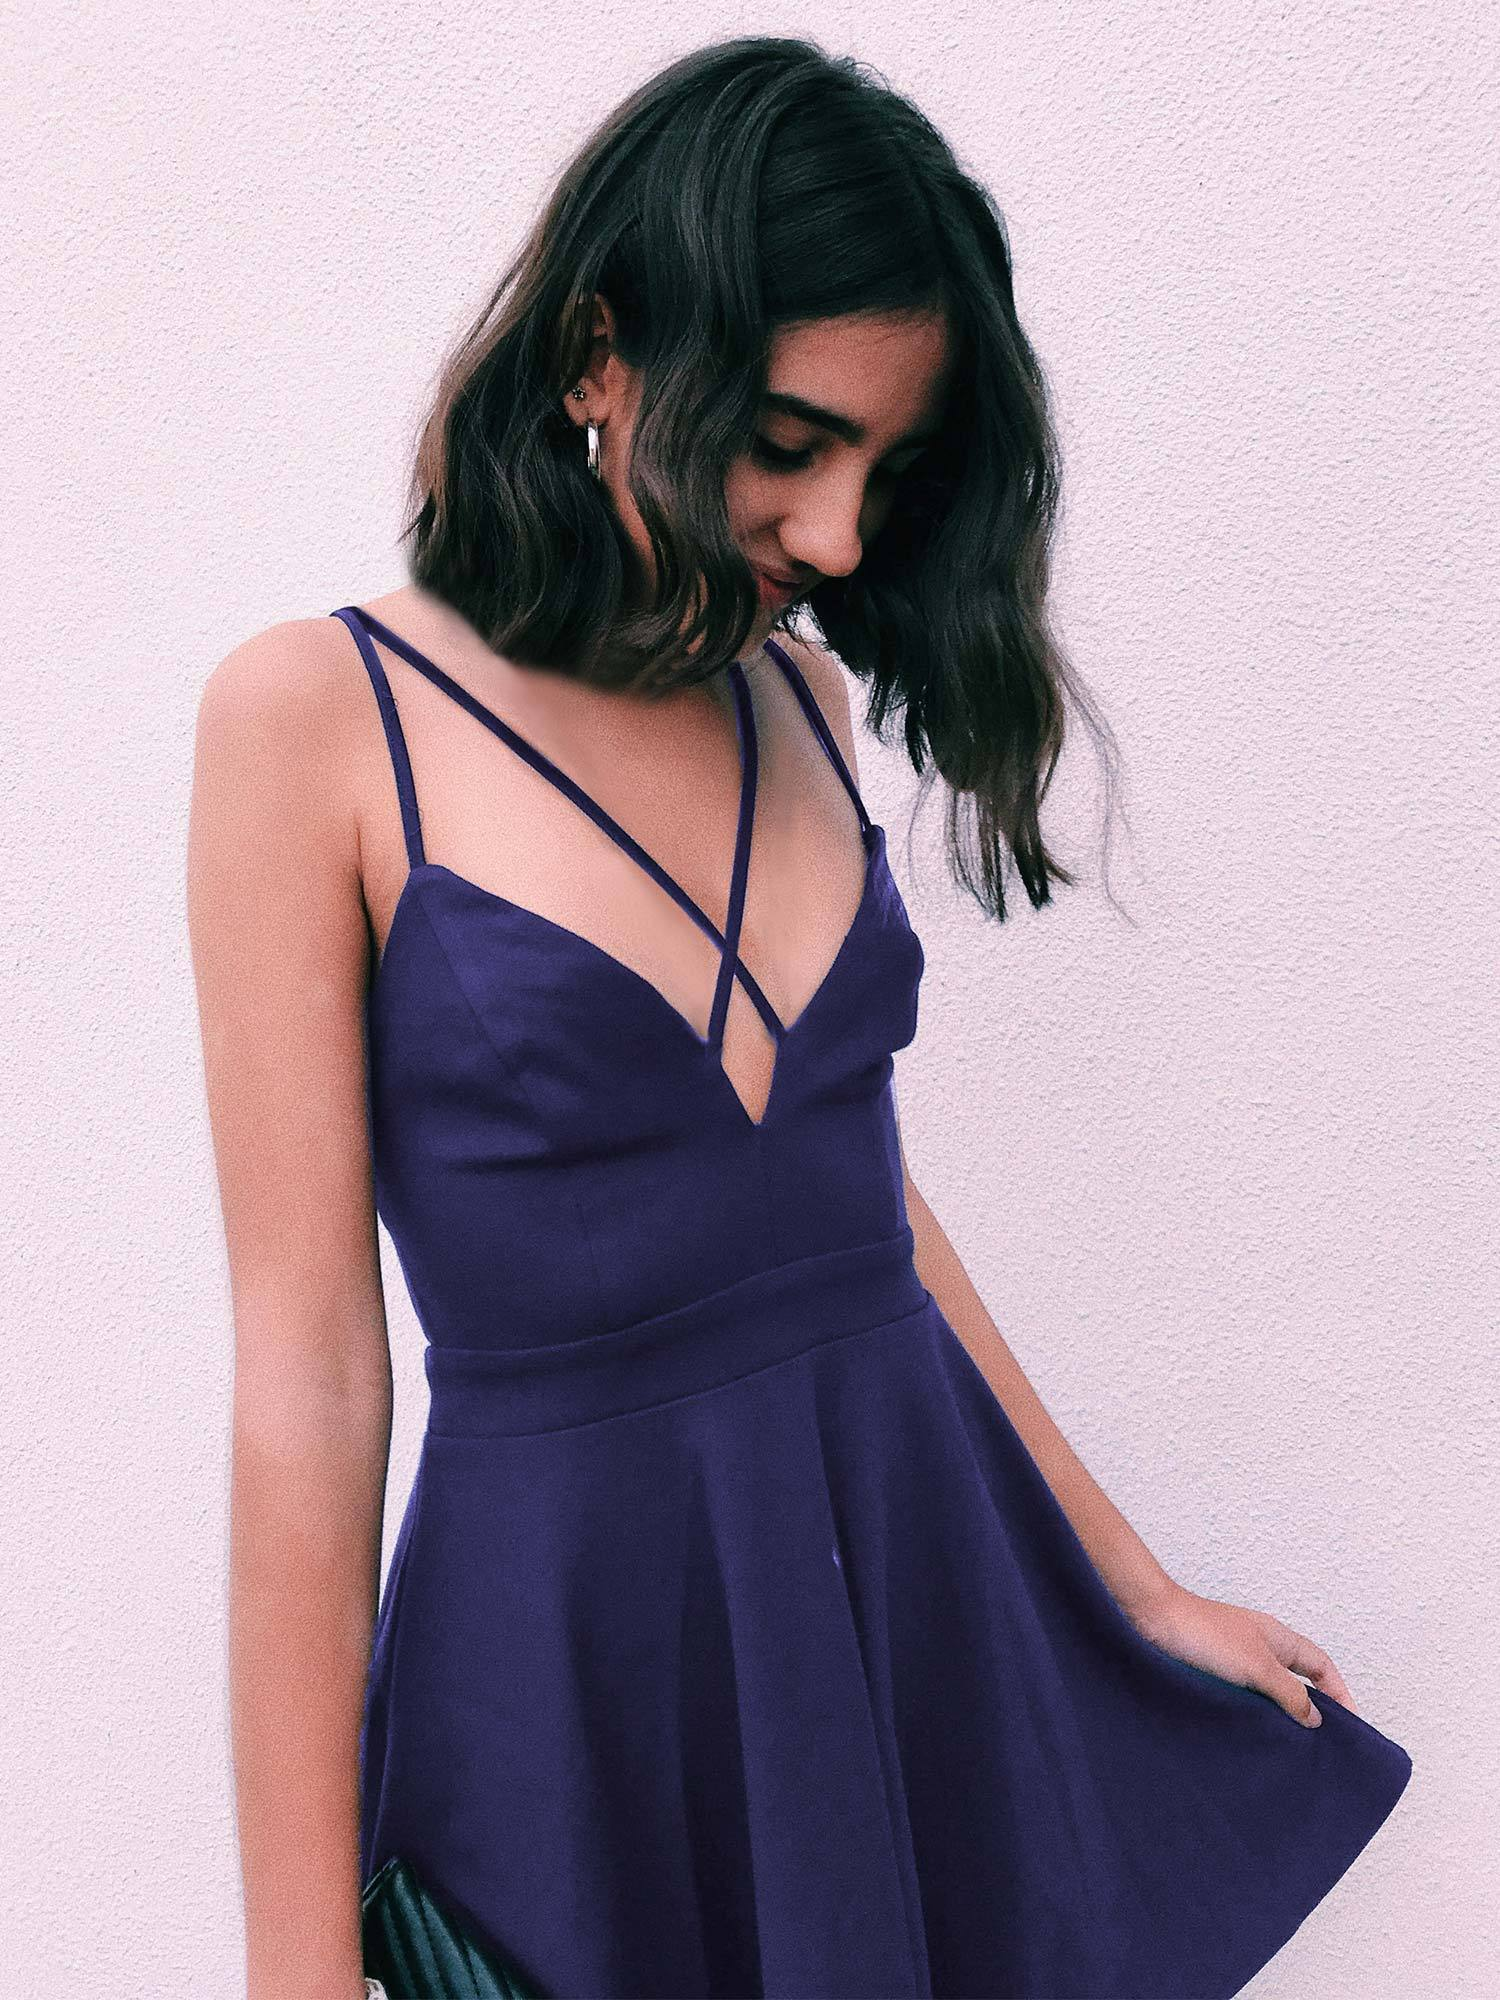 7997cb3aa216a Alisa Pan V Neck Strappy Fit and Flare Dress|Ever-Pretty - Ever ...